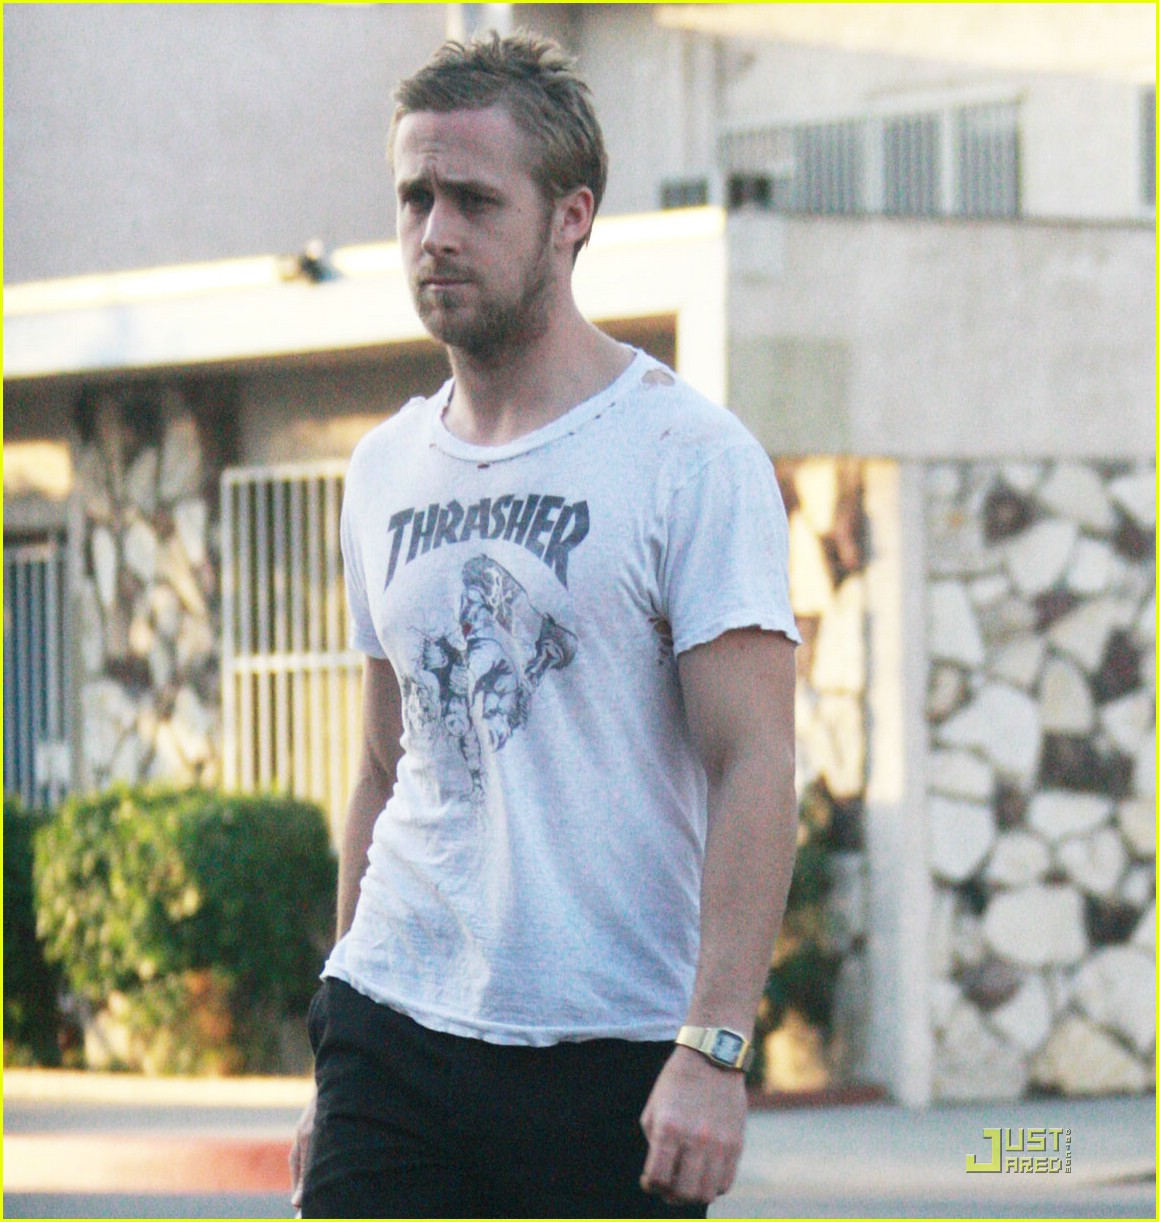 Ryan Gosling Has A Big Hole In His T Shirt Photo 1546291 Ryan Gosling Pictures Just Jared